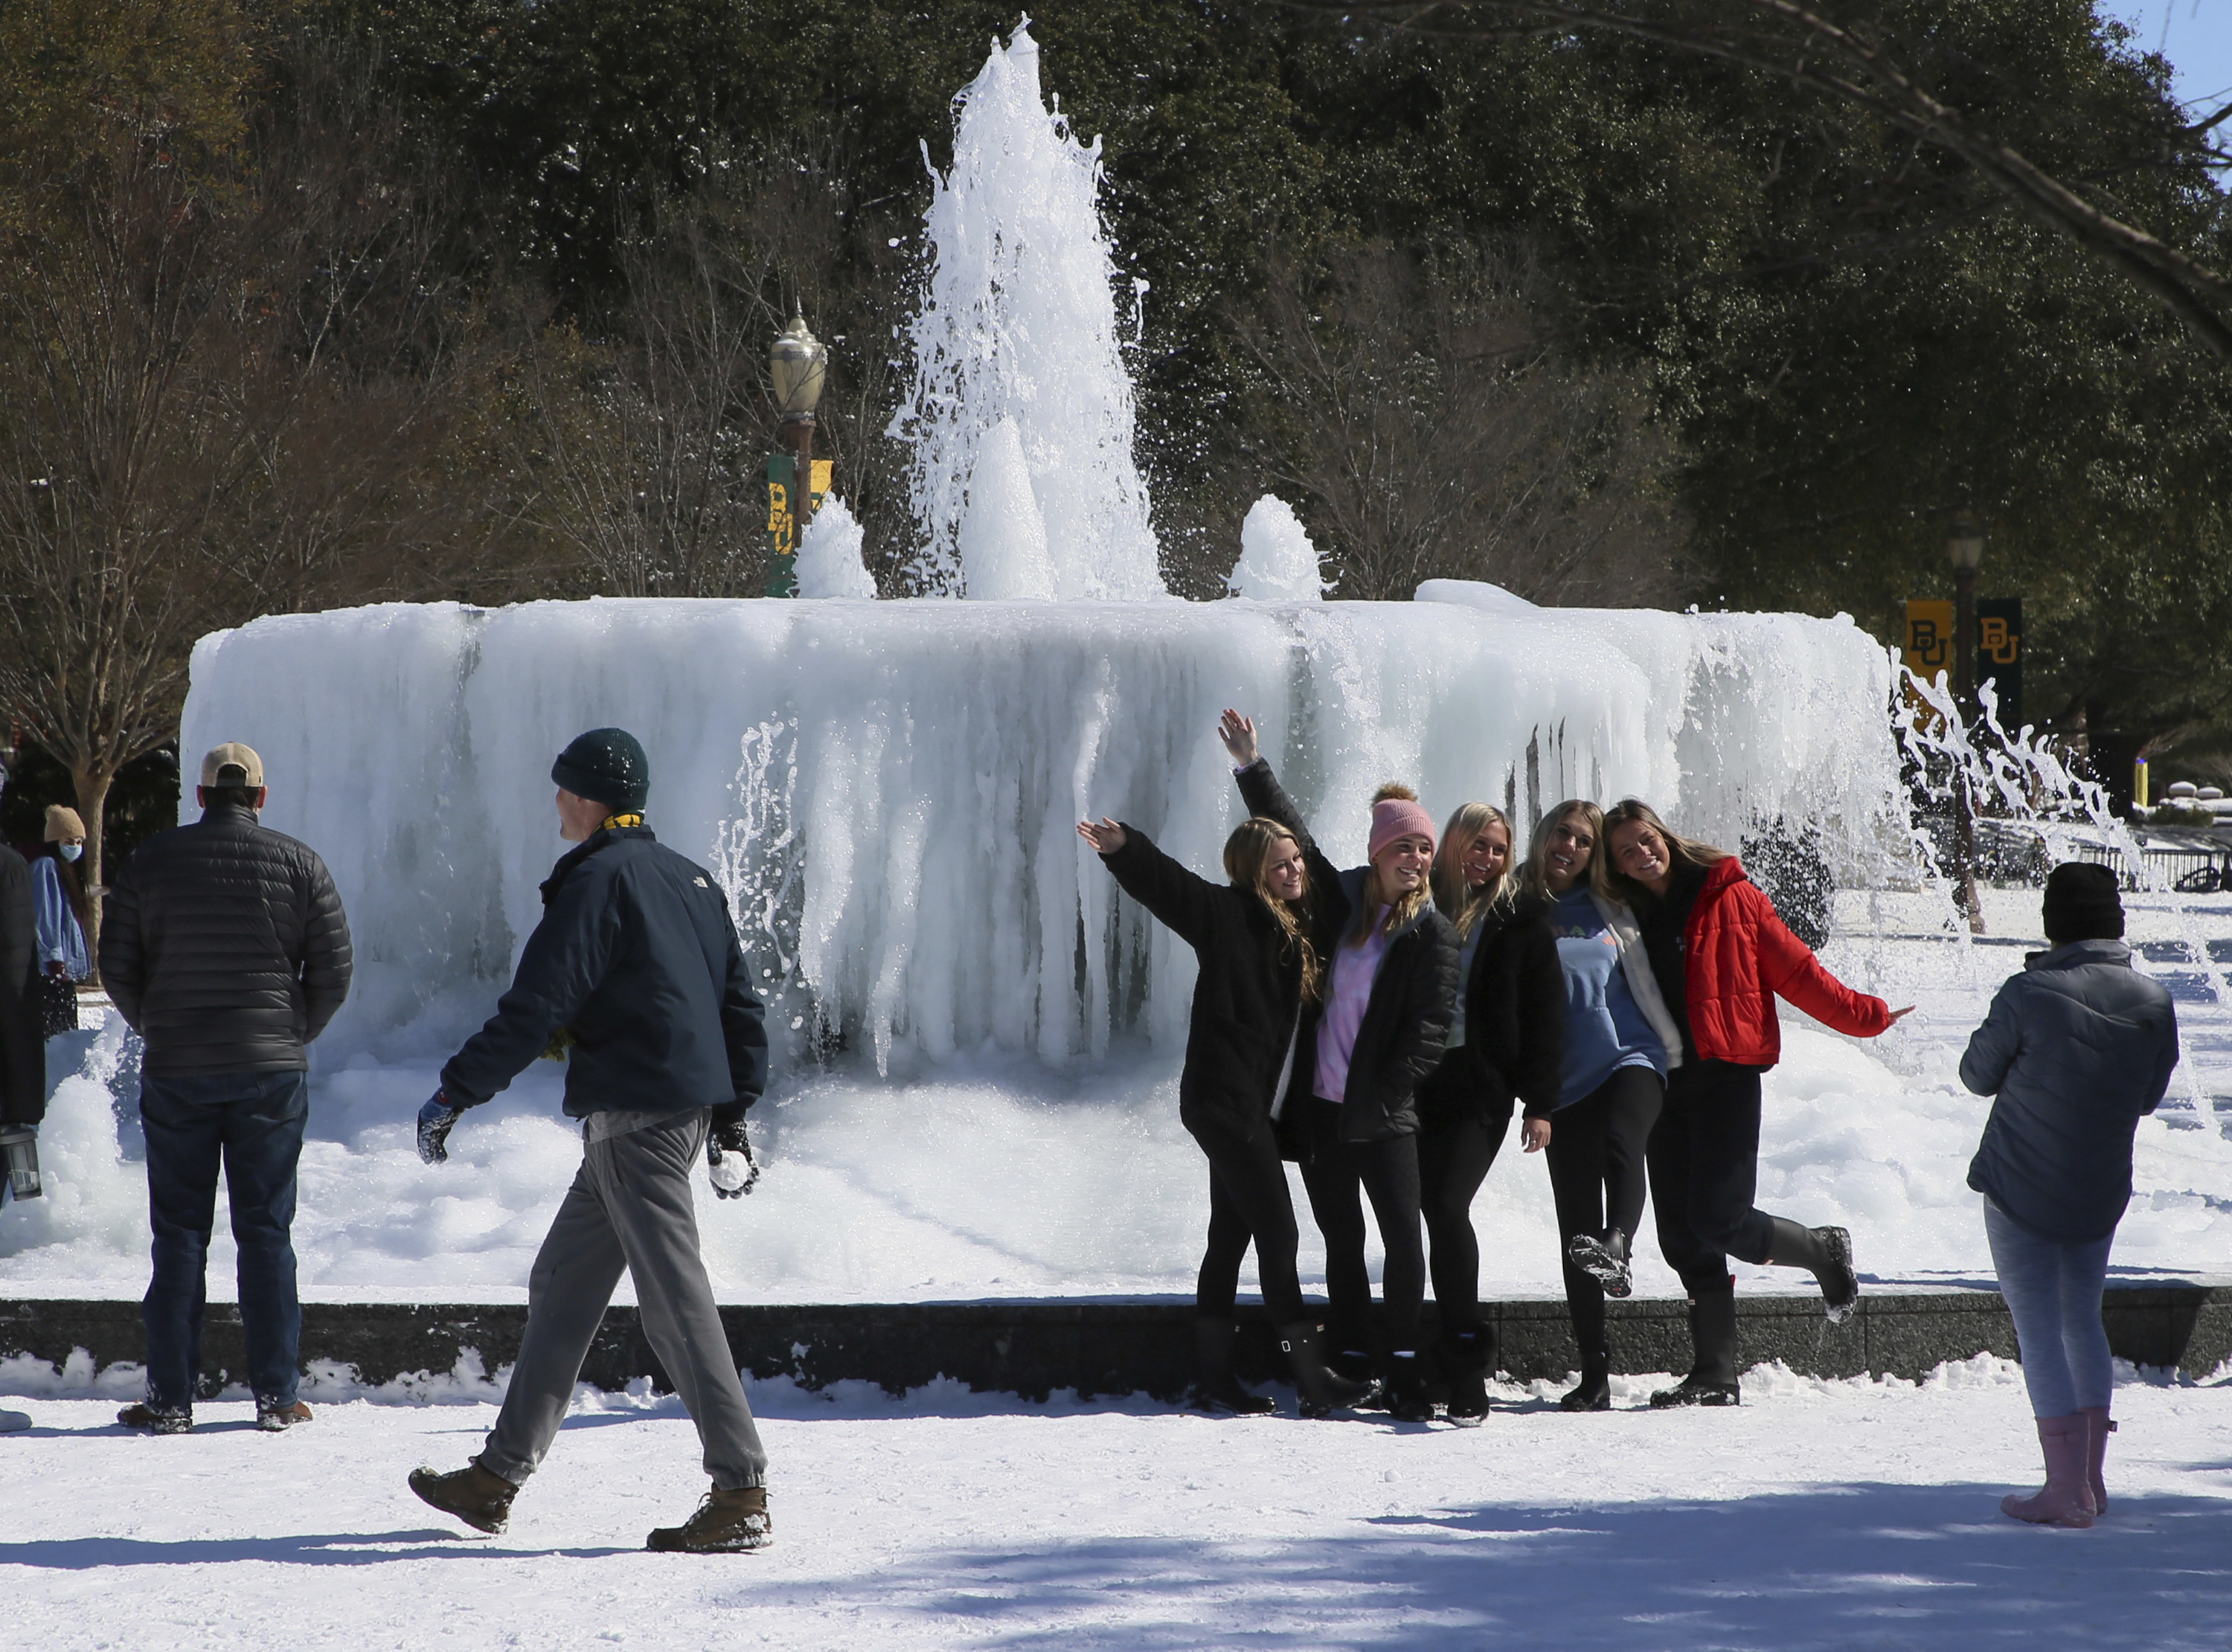 A group of young women posing for a photo together in front of a frozen fountain